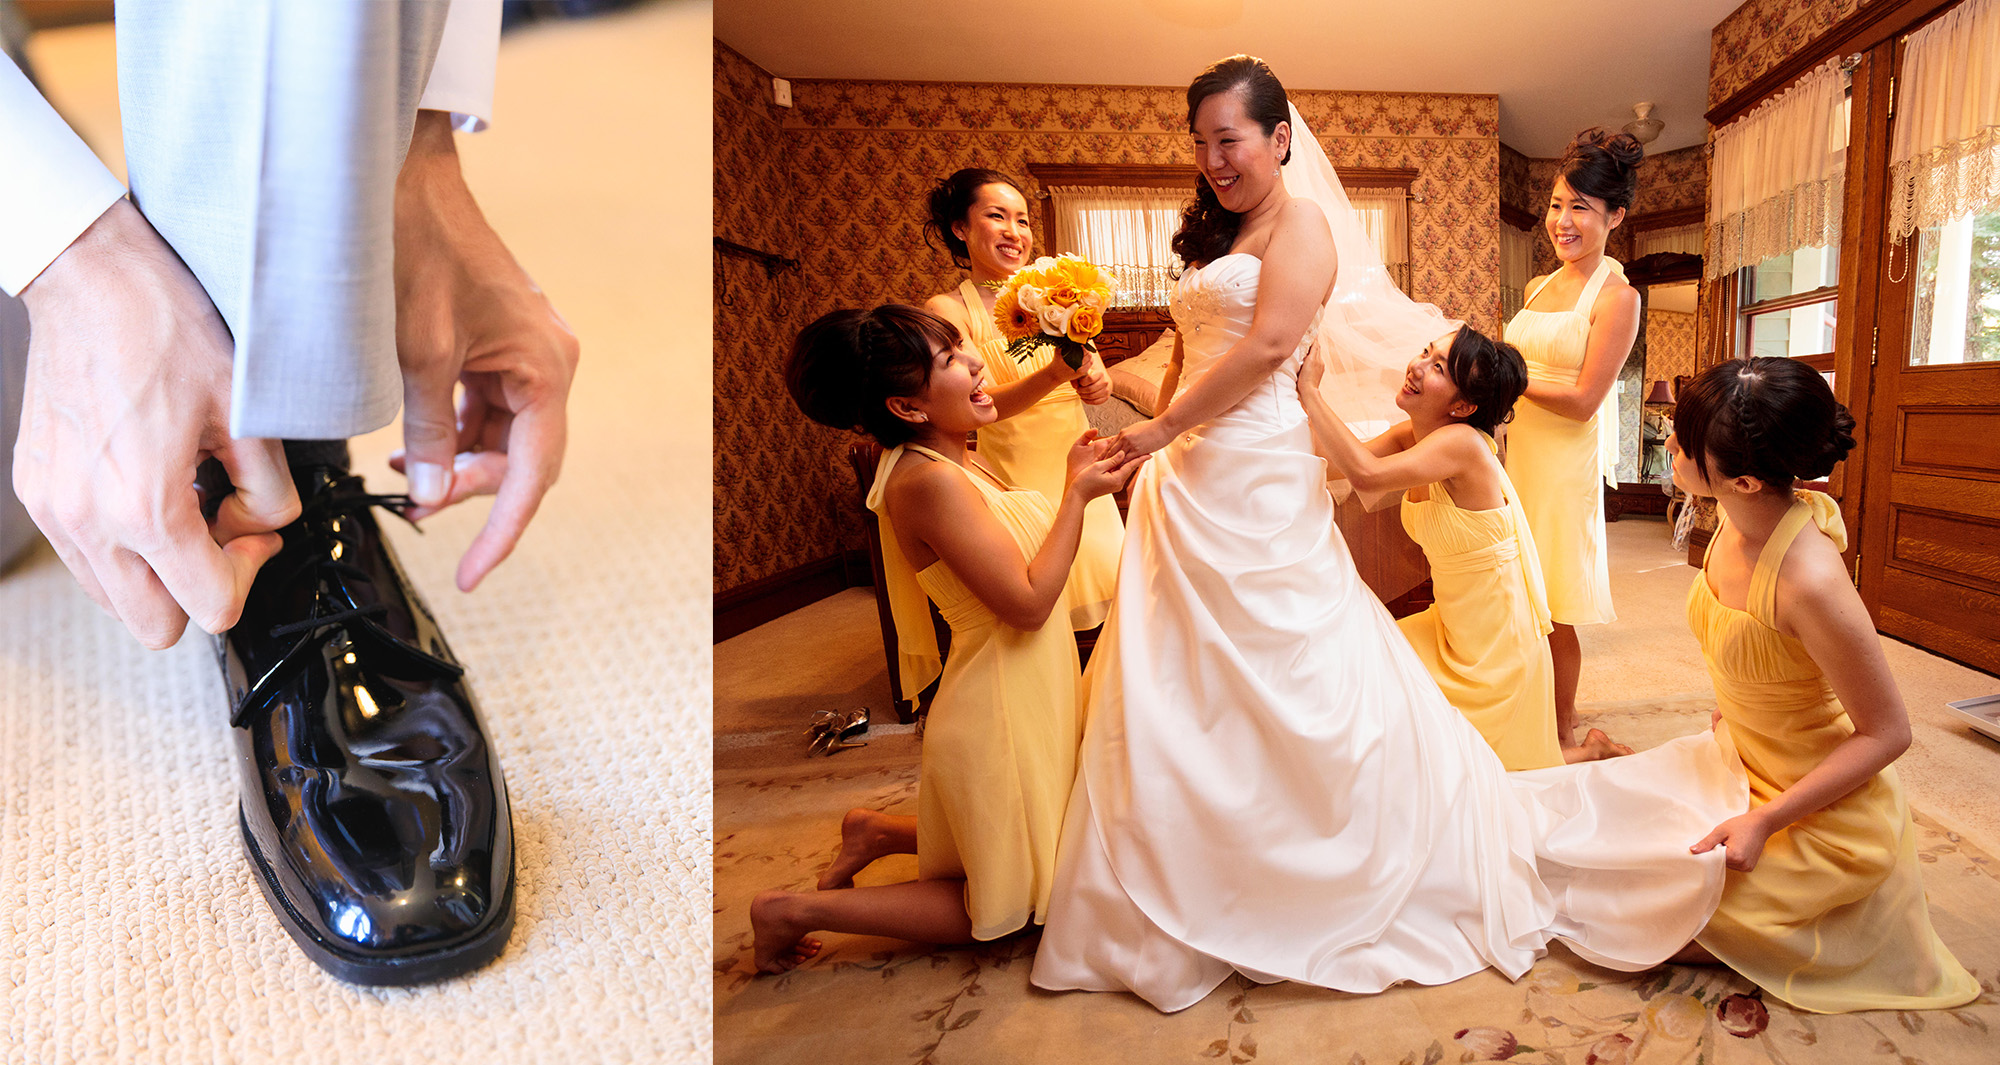 A groom ties his shoe (left) while a bride is helped into her dress (right) at the same time on different floors of the venue. Two photographers can capture moments in different locations, simultaneously.